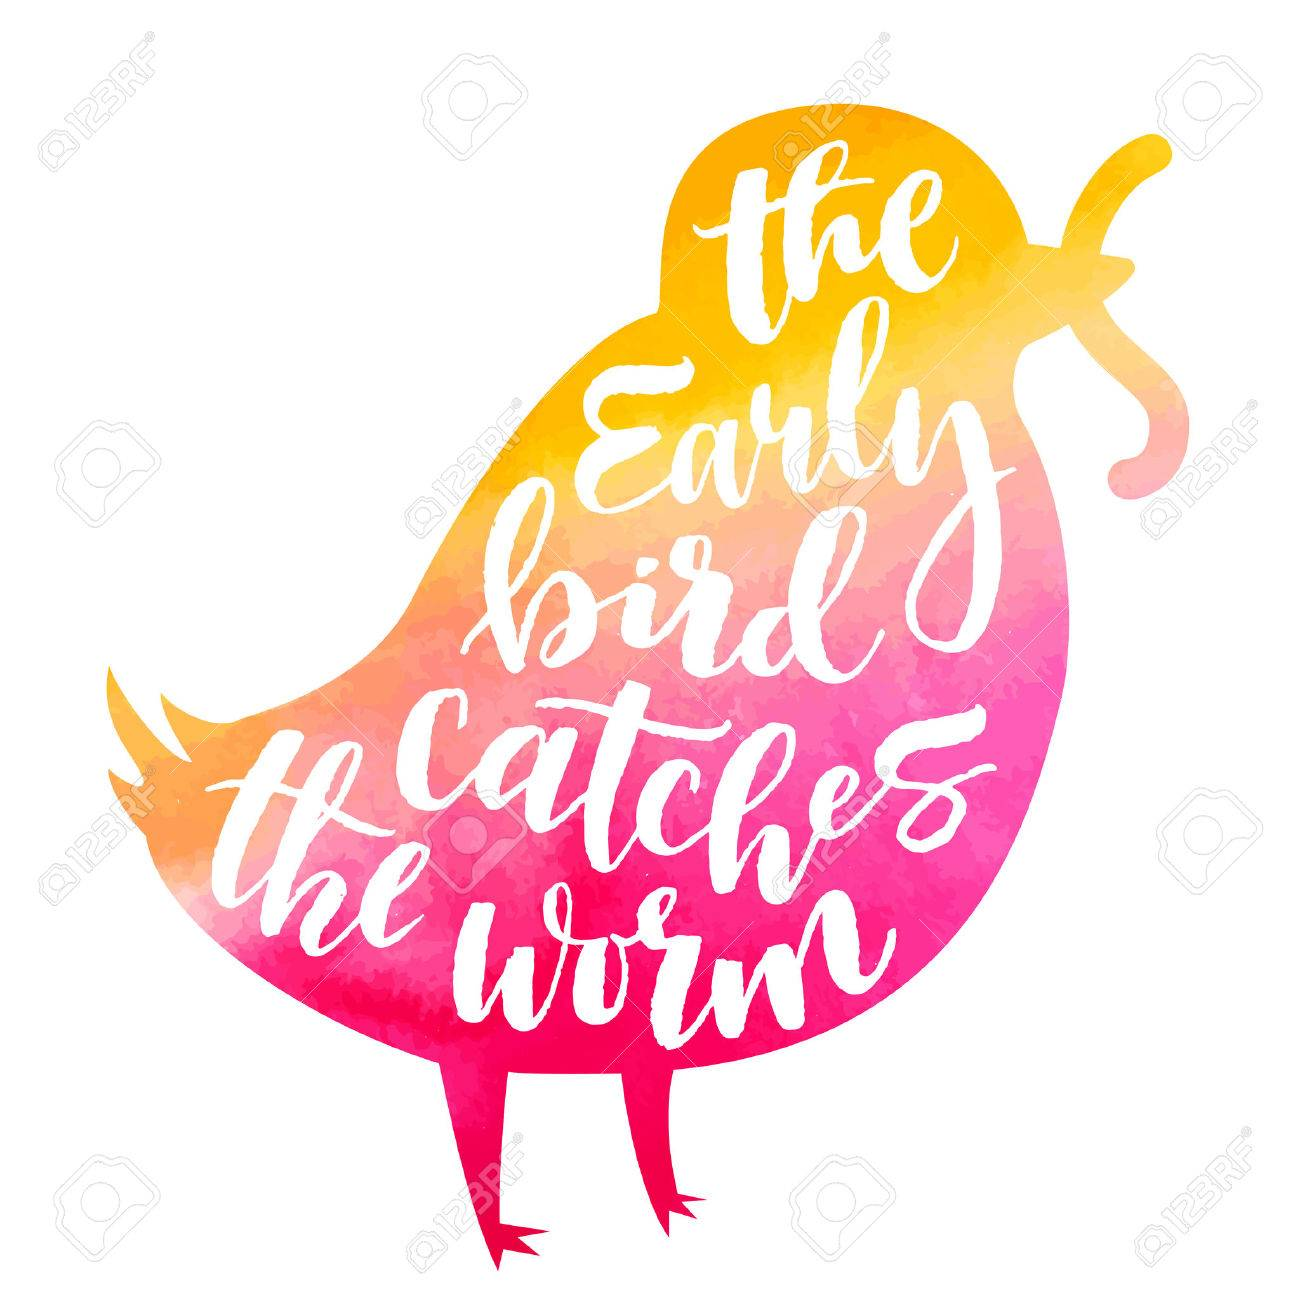 Lettering proverb early bird catches the worm. Watercolor background in silhouette. Modern calligraphy style in isolated illustration. - 59468291